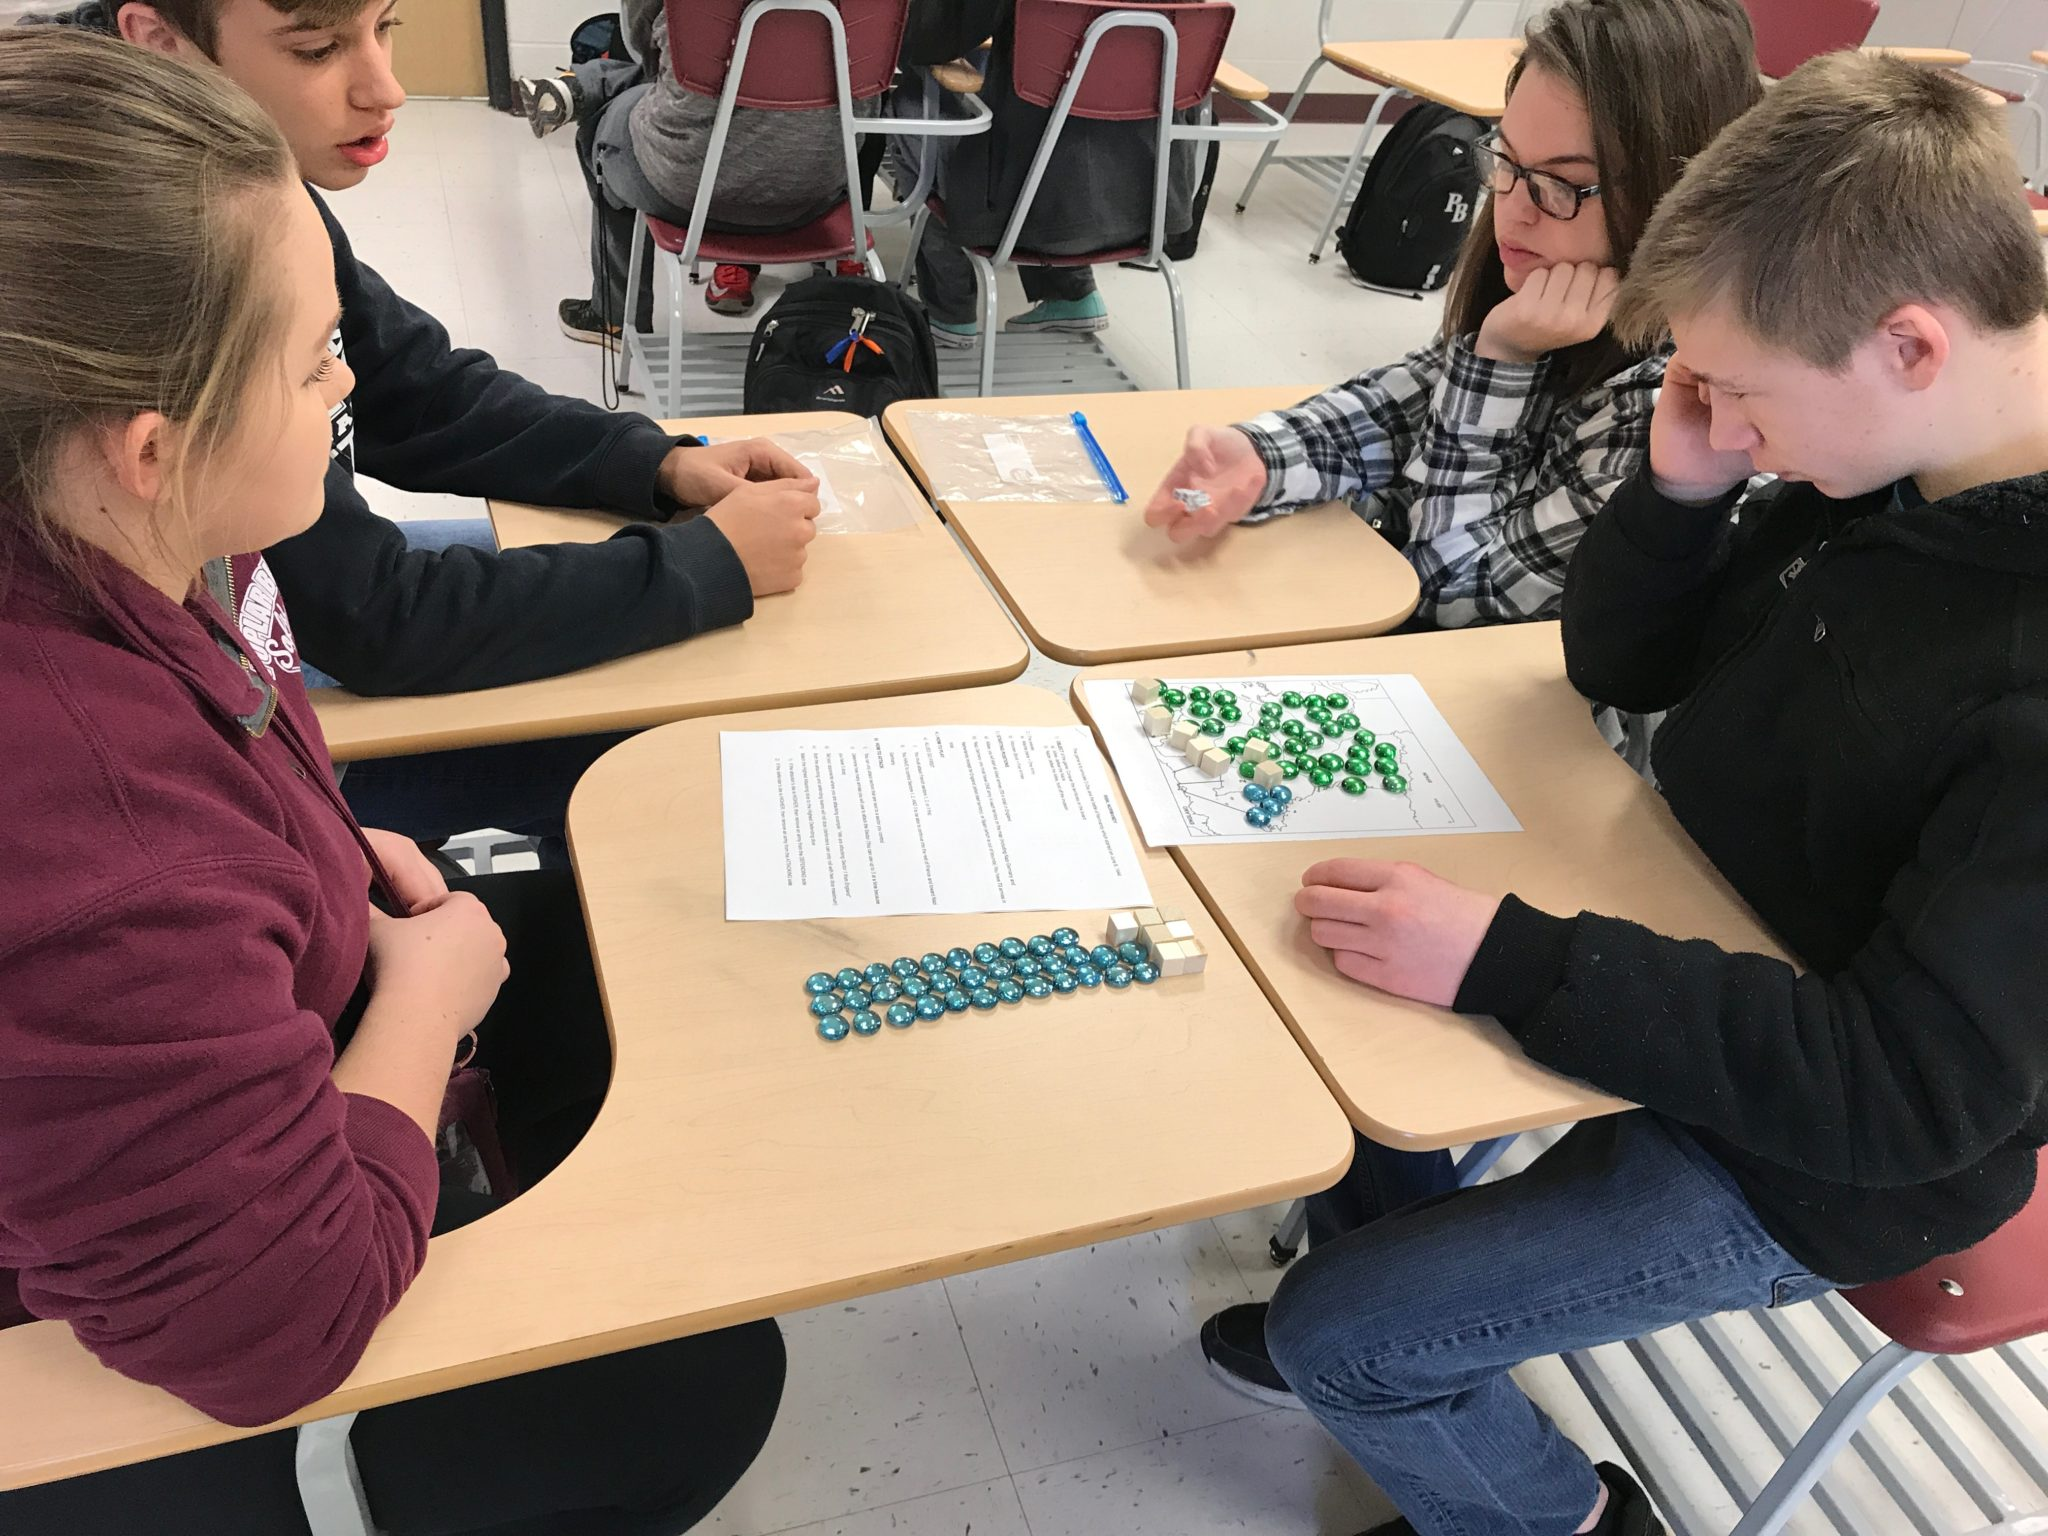 Students working in industrialization simulation with marbles representing items on an assembly line